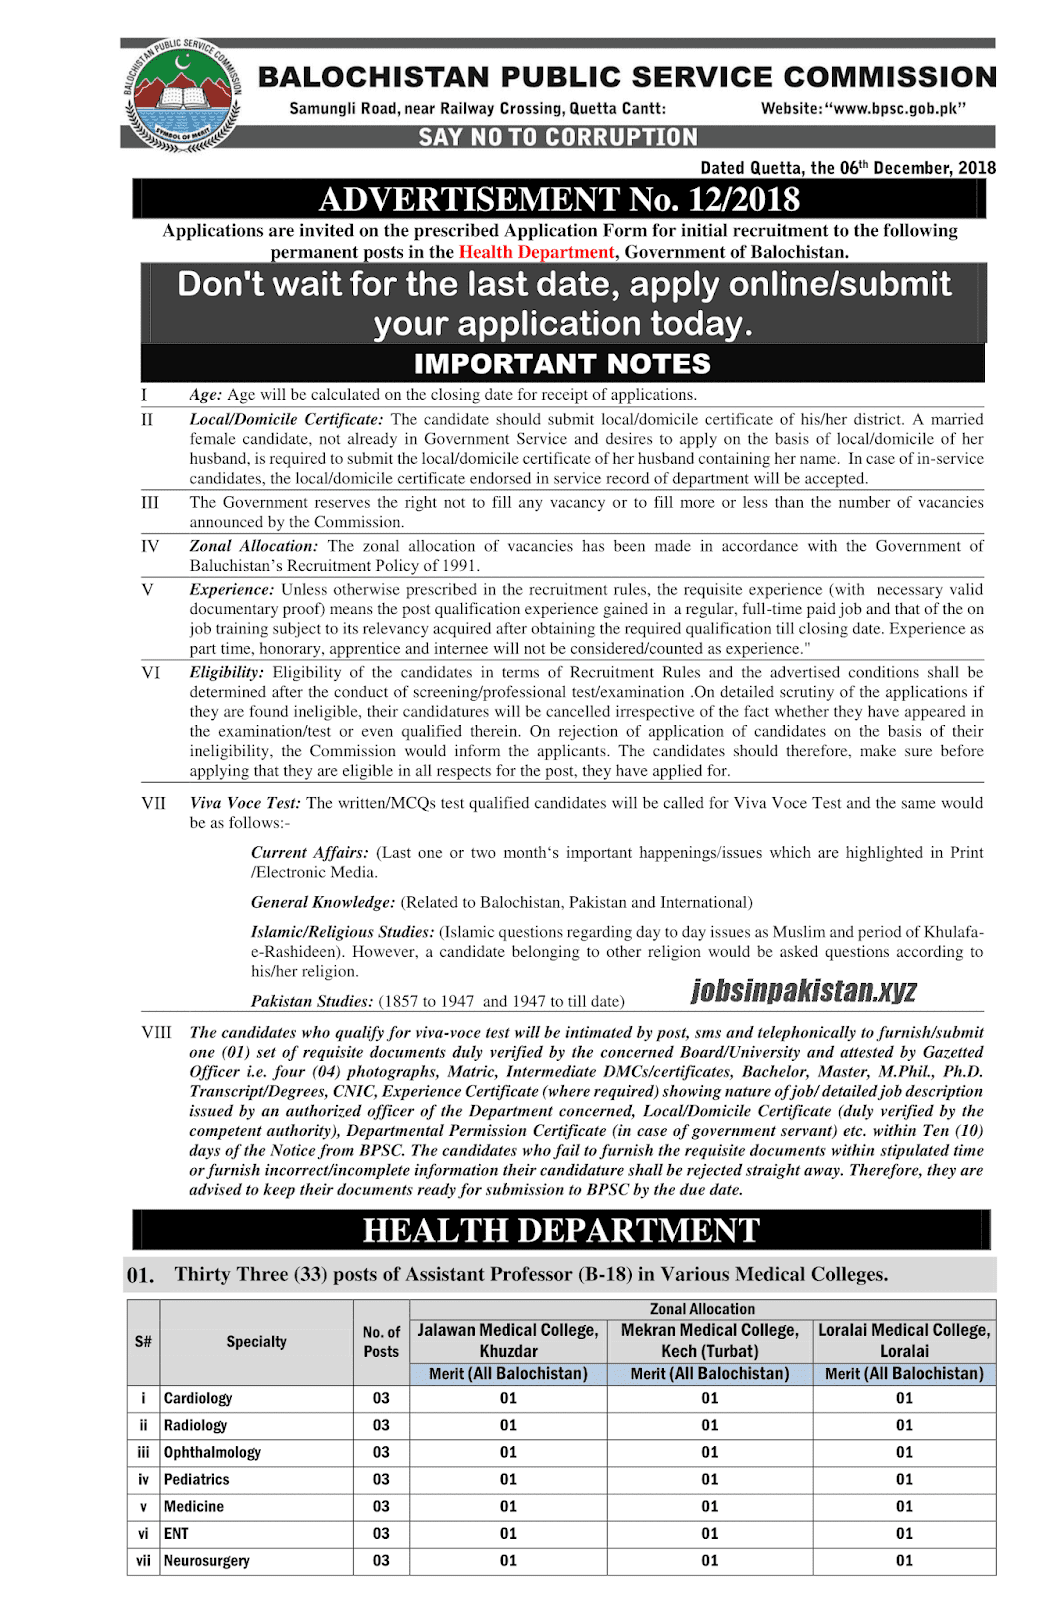 Advertisement for BPSC Jobs December 2018 Page Number 1/3